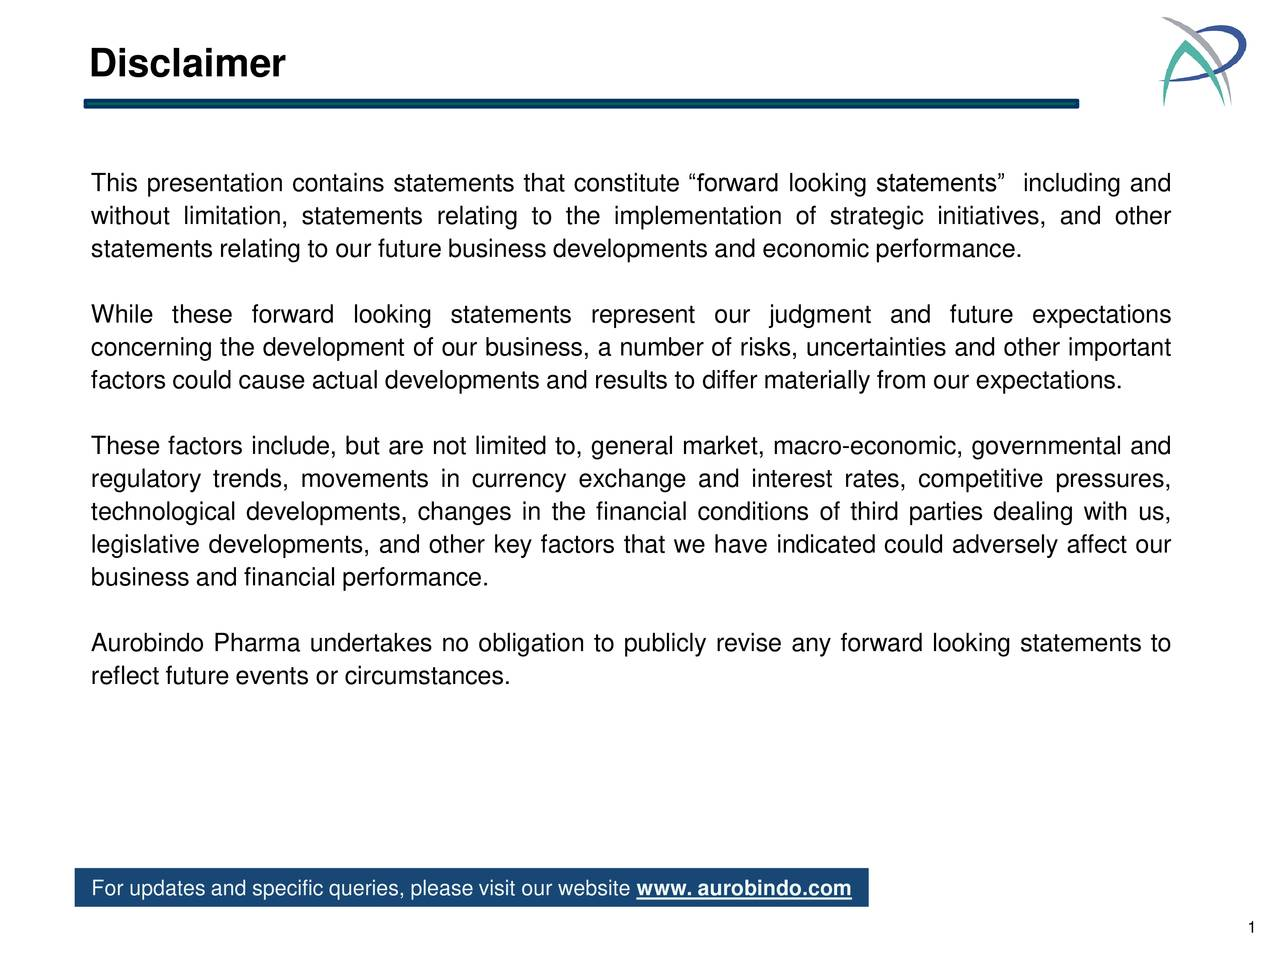 """This presentation contains statements that constitute """"forward looking statements"""" including and without limitation, statements relating to the implementation of strategic initiatives, and other statements relating to our future business developments and economic performance. While these forward looking statements represent our judgment and future expectations concerning the development of our business, a number of risks, uncertainties and other important factors could cause actual developments and results to differ materially from our expectations. These factors include, but are not limited to, general market, macro-economic, governmental and regulatory trends, movements in currency exchange and interest rates, competitive pressures, technological developments, changes in the financial conditions of third parties dealing with us, legislative developments, and other key factors that we have indicated could adversely affect our business and financial performance. Aurobindo Pharma undertakes no obligation to publicly revise any forward looking statements to reflect future events or circumstances. For updates and specific queries, please visit our website www. aurobindo.com 1"""